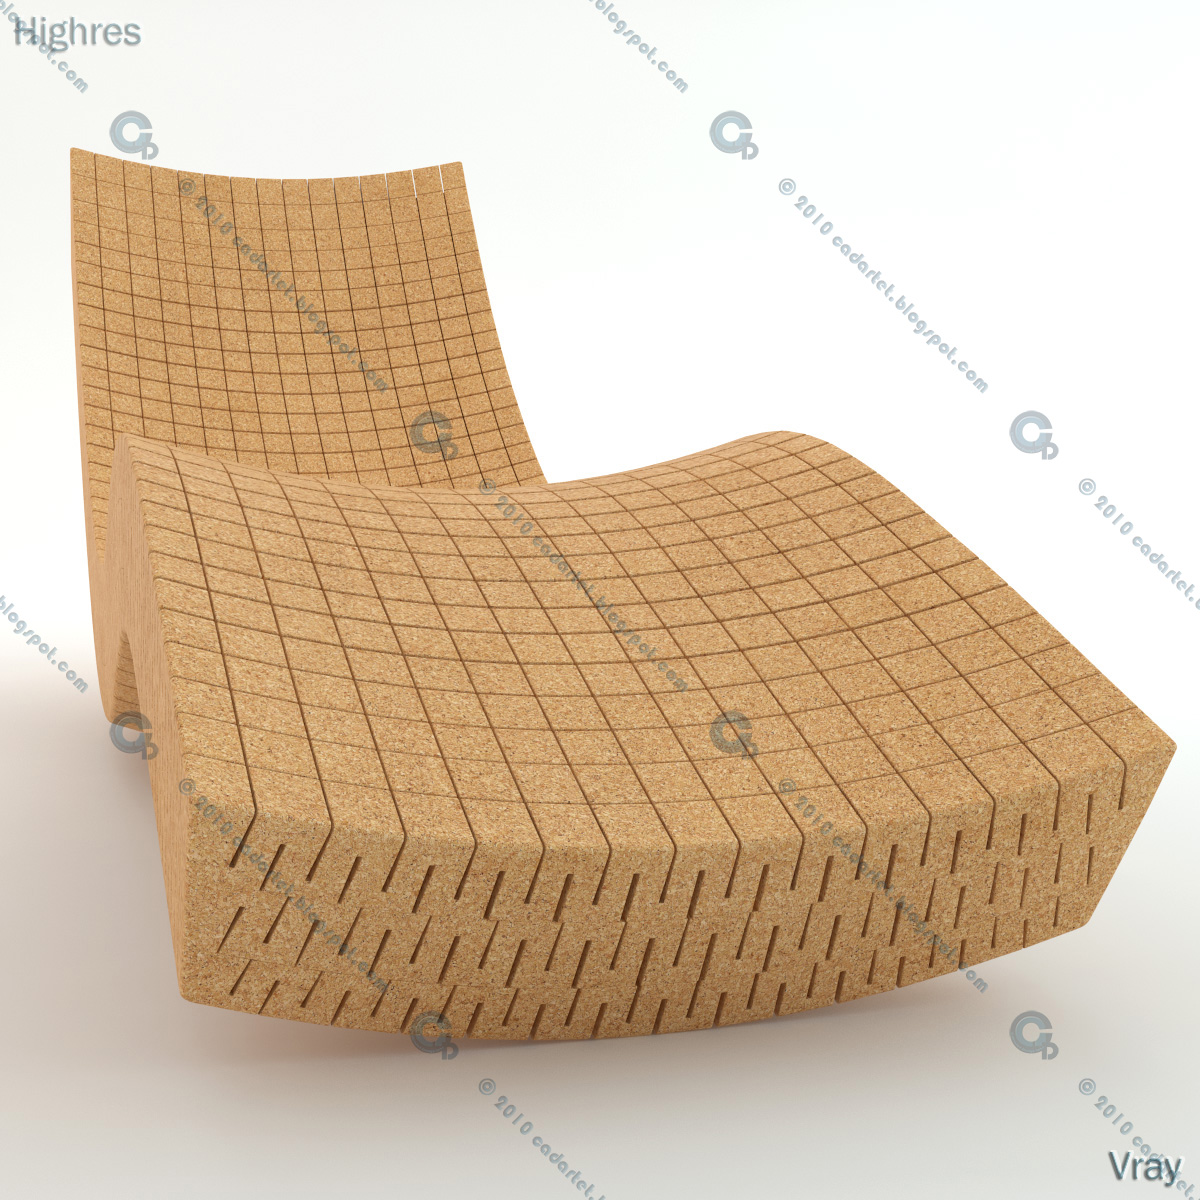 cadartet cork chaise longue 3d model 3dsmax vray mental ray daniel michalik